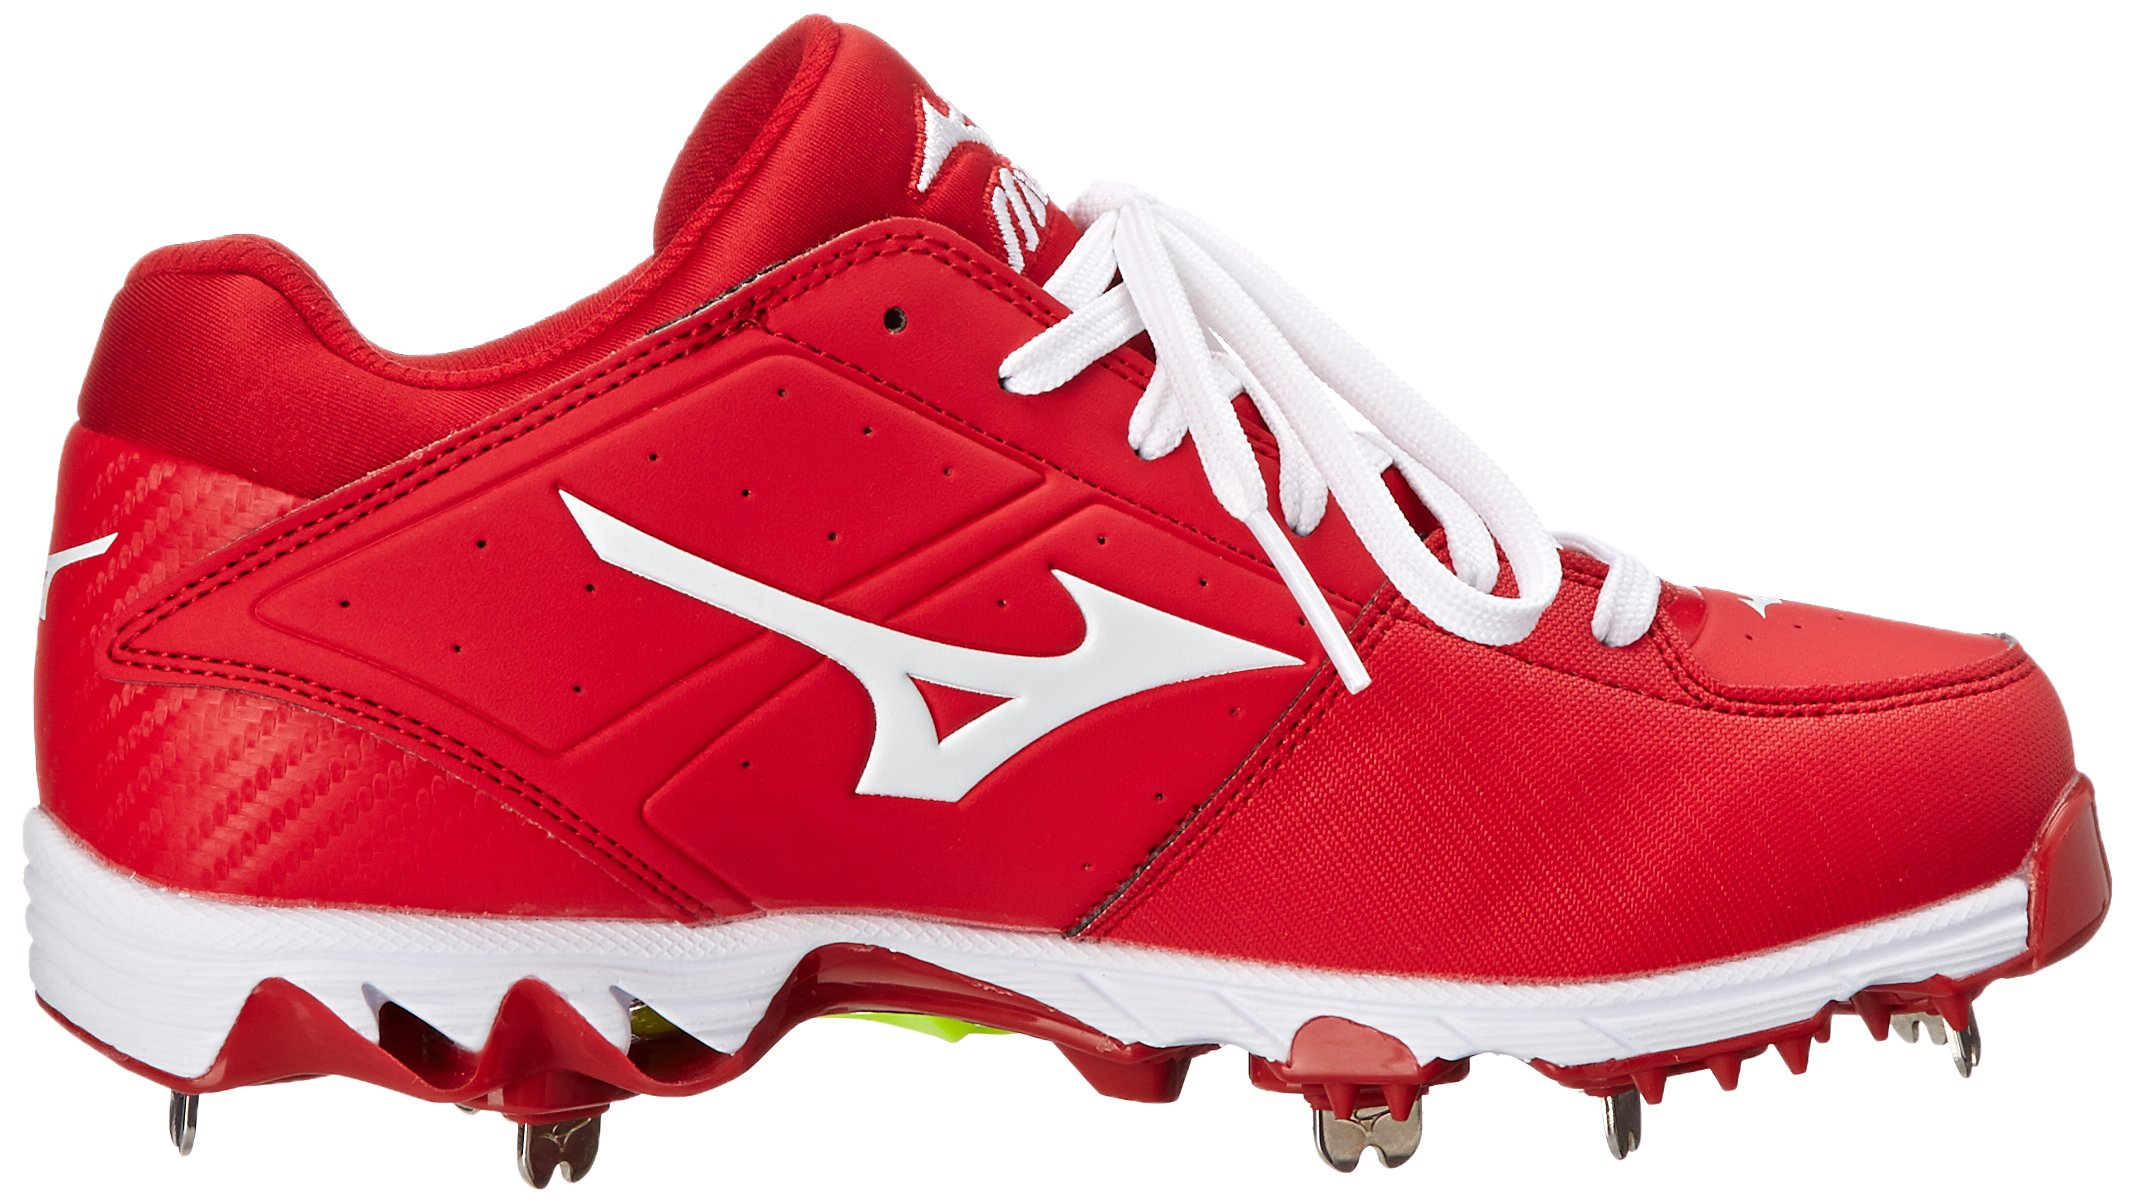 82339386e72 Mizuno Women s 9 Spike Swift 4 Fast Pitch Metal Softball Cleat - 320510.91    Sports   Fitness Features   Sports   Outdoors - tibs